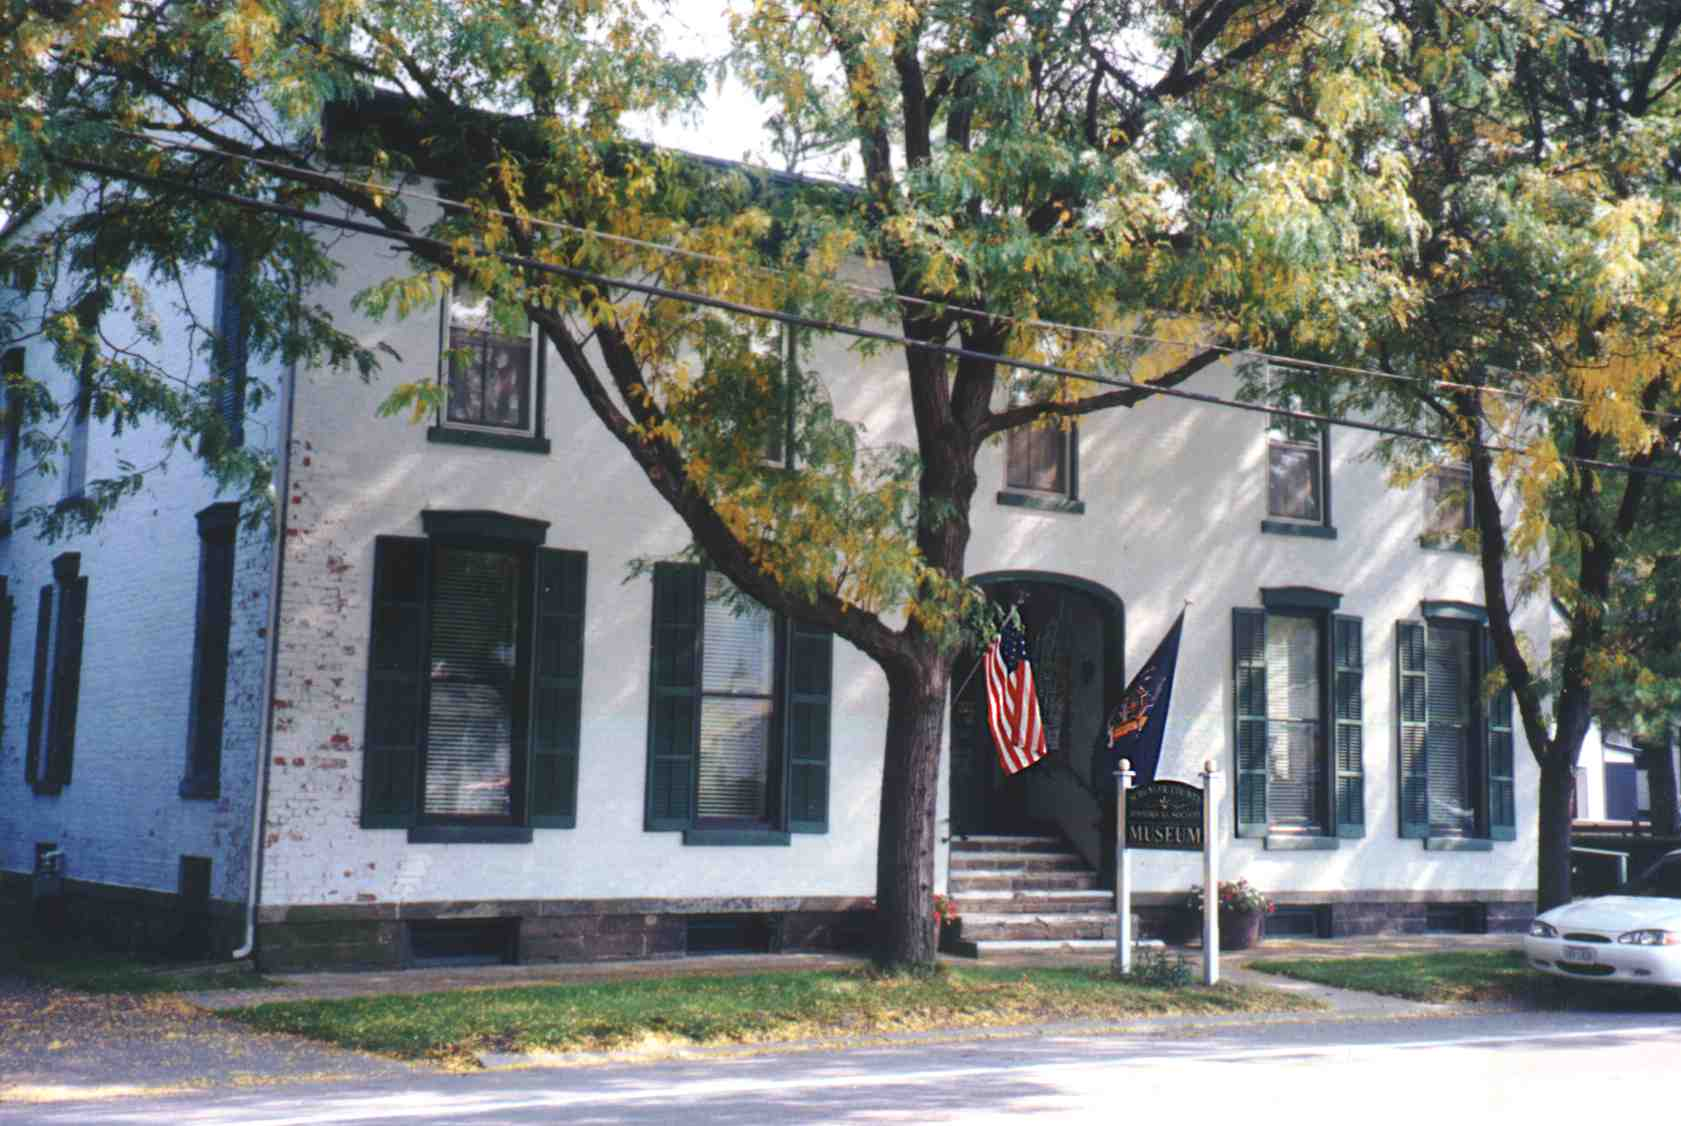 The Schuyler County Historical Society